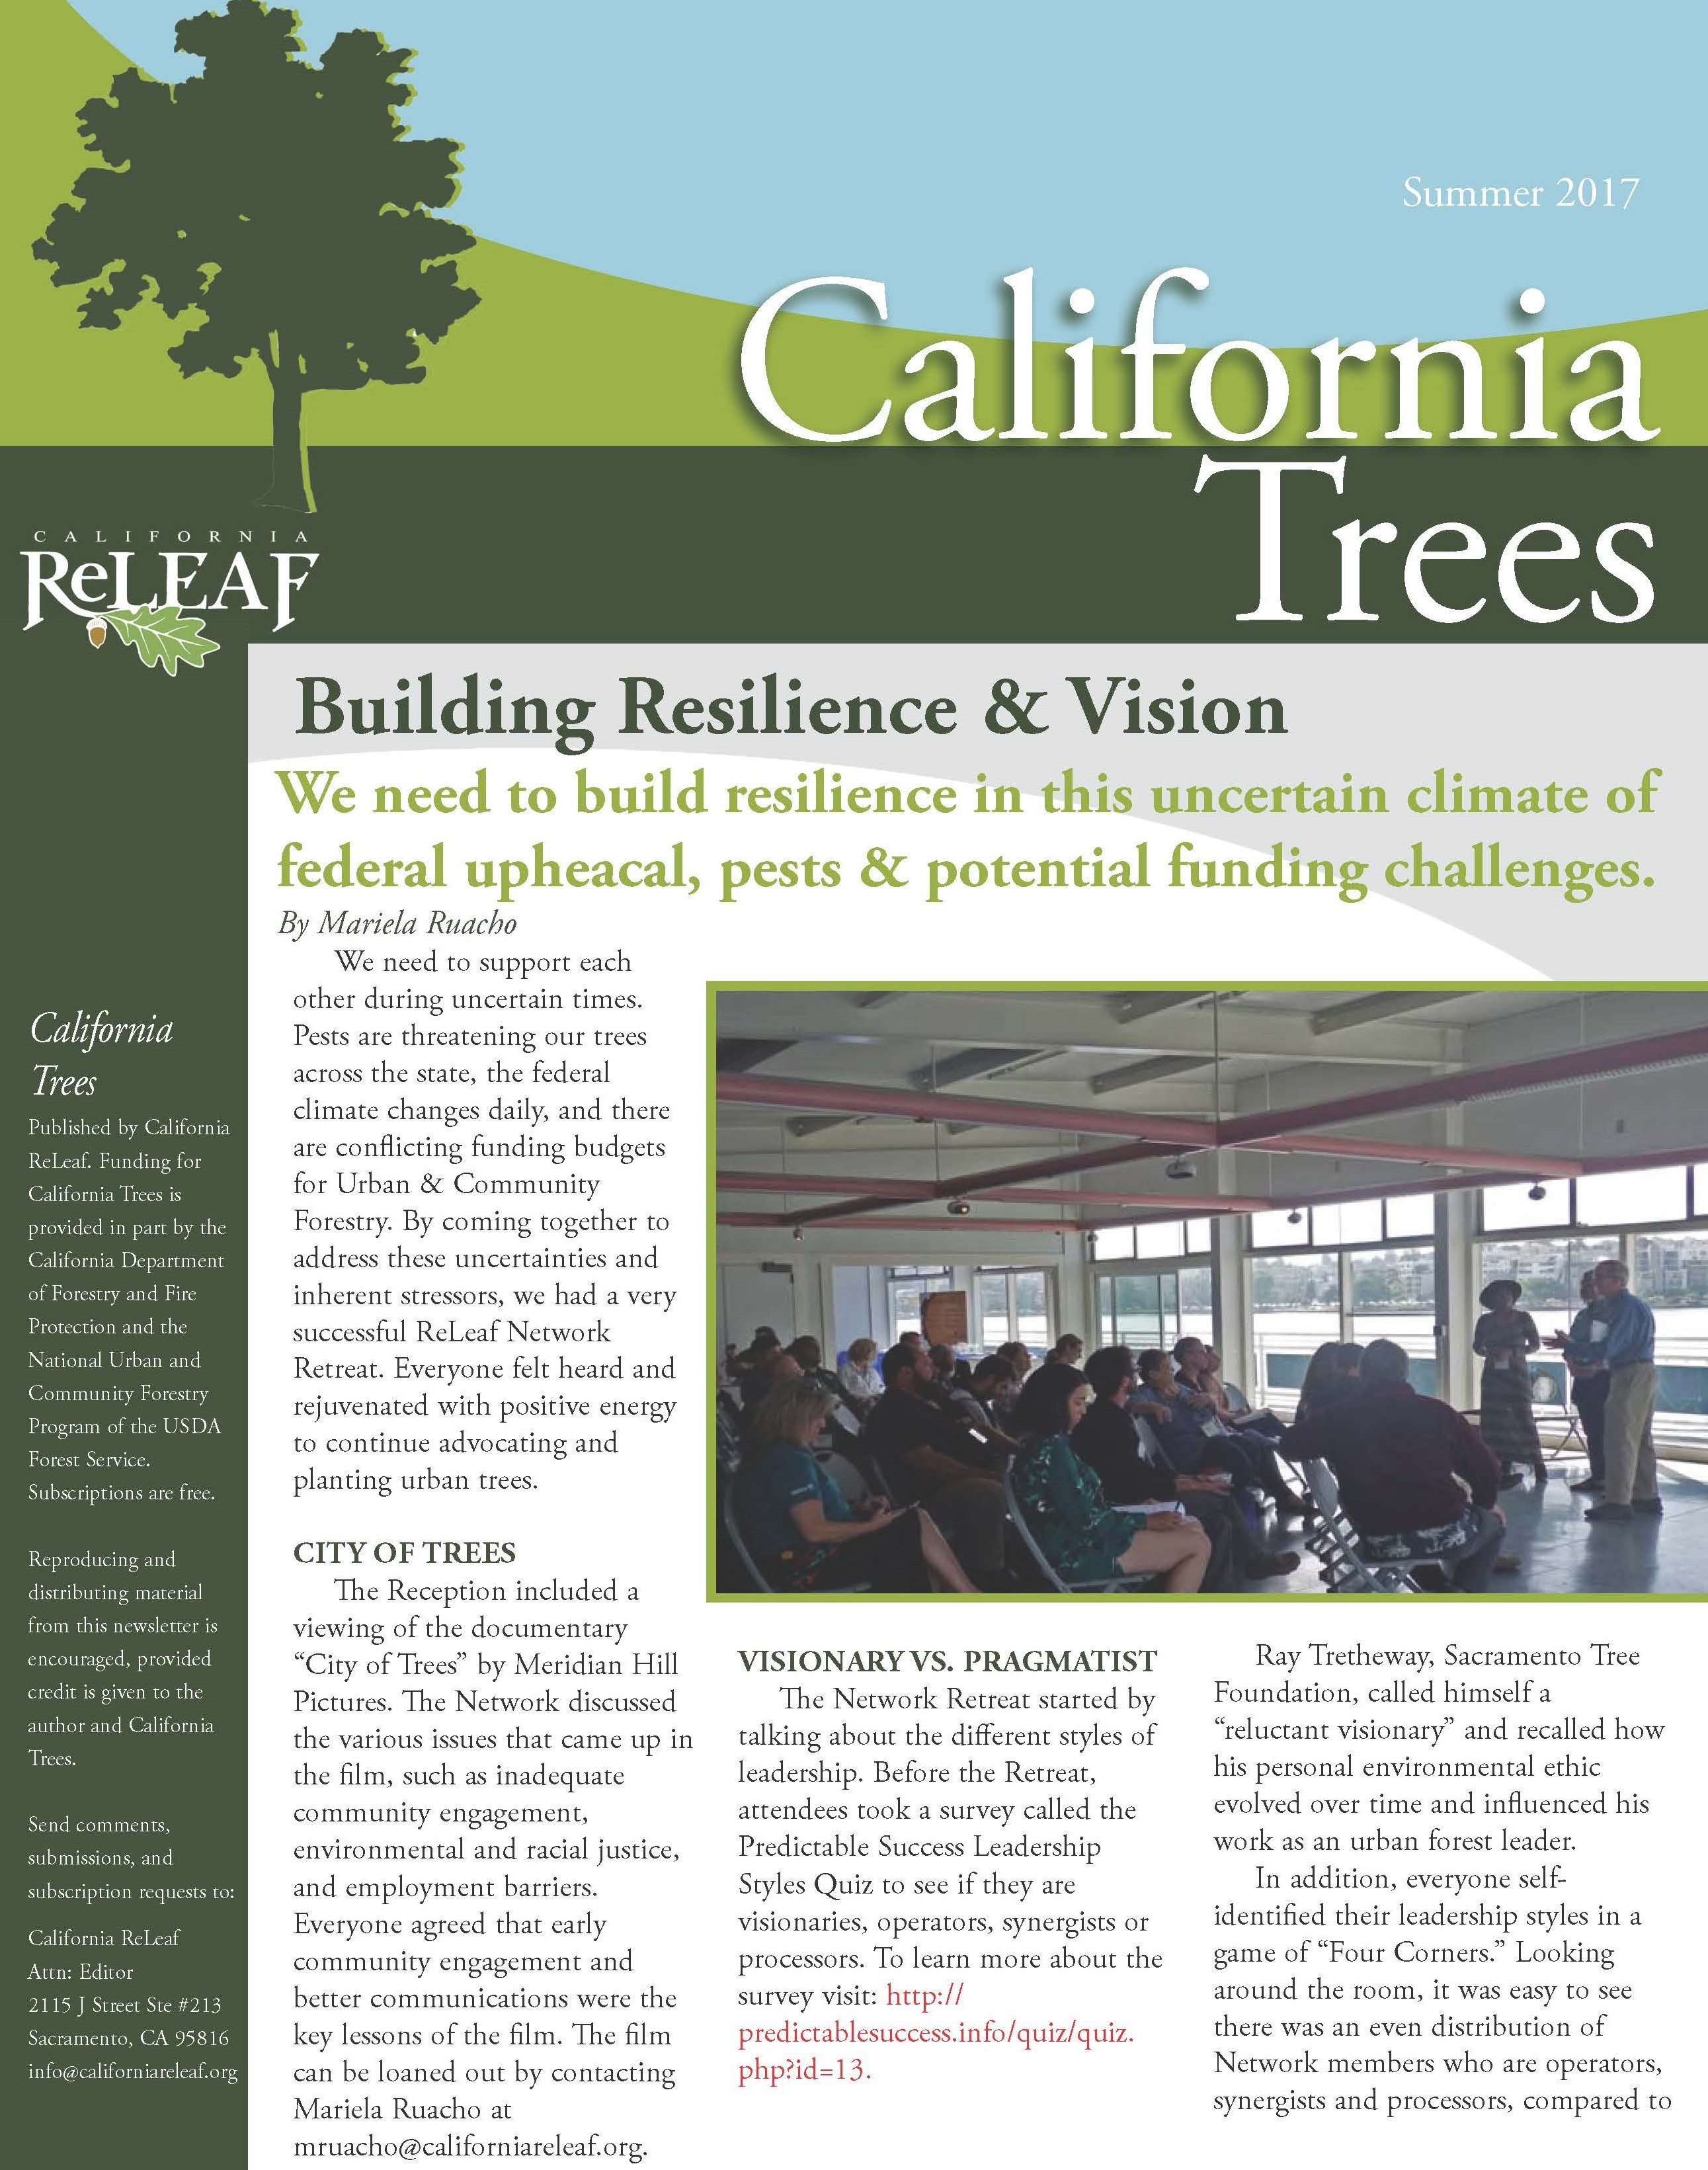 Page 1 2 0 - California ReLeaf